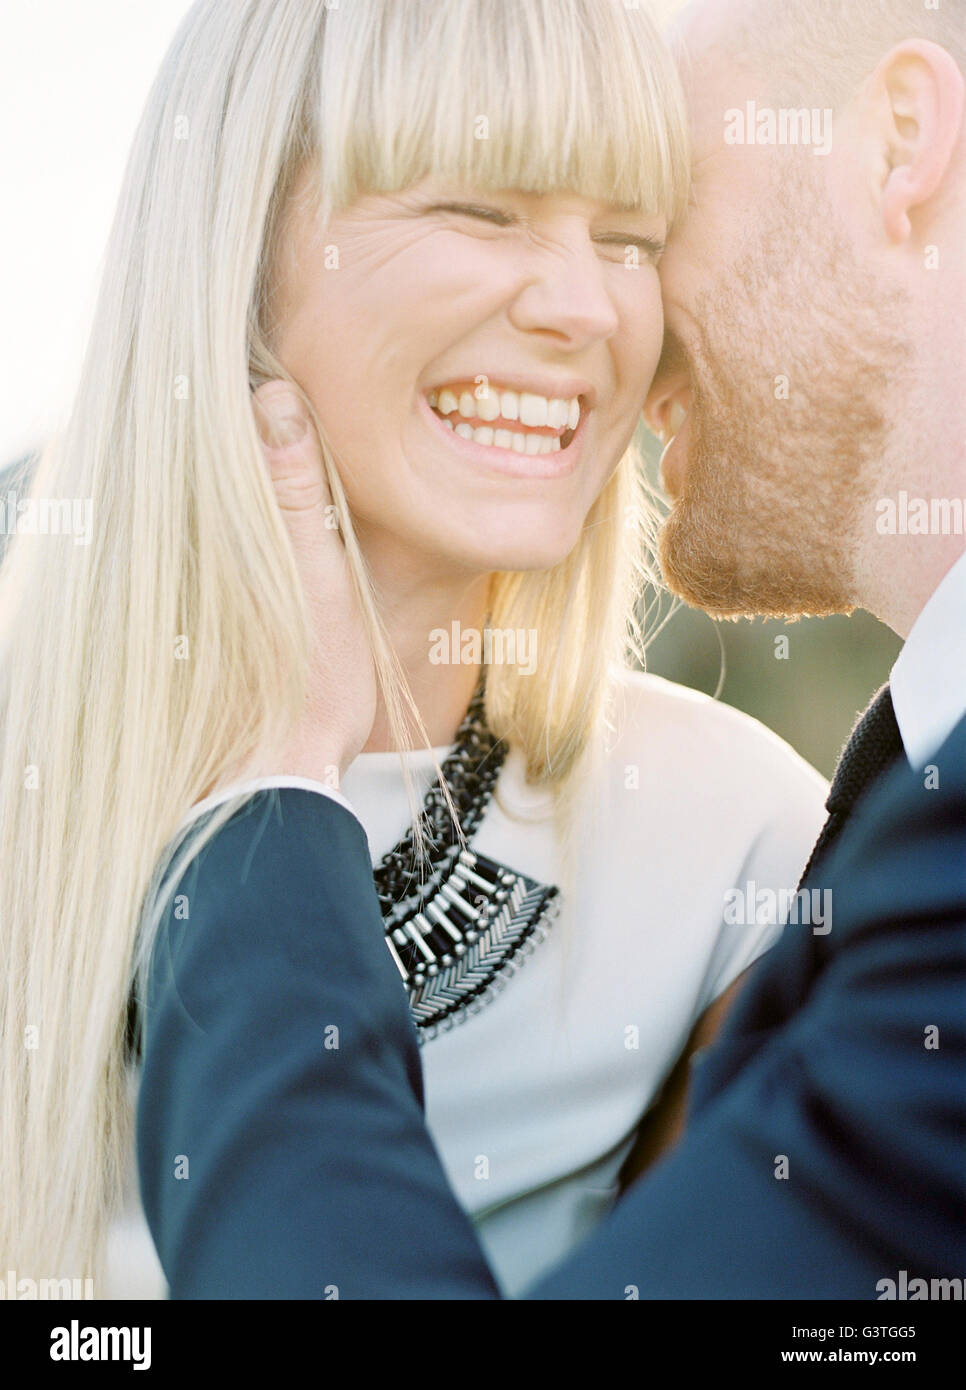 Sweden, Groom kissing bride´s cheek - Stock Image